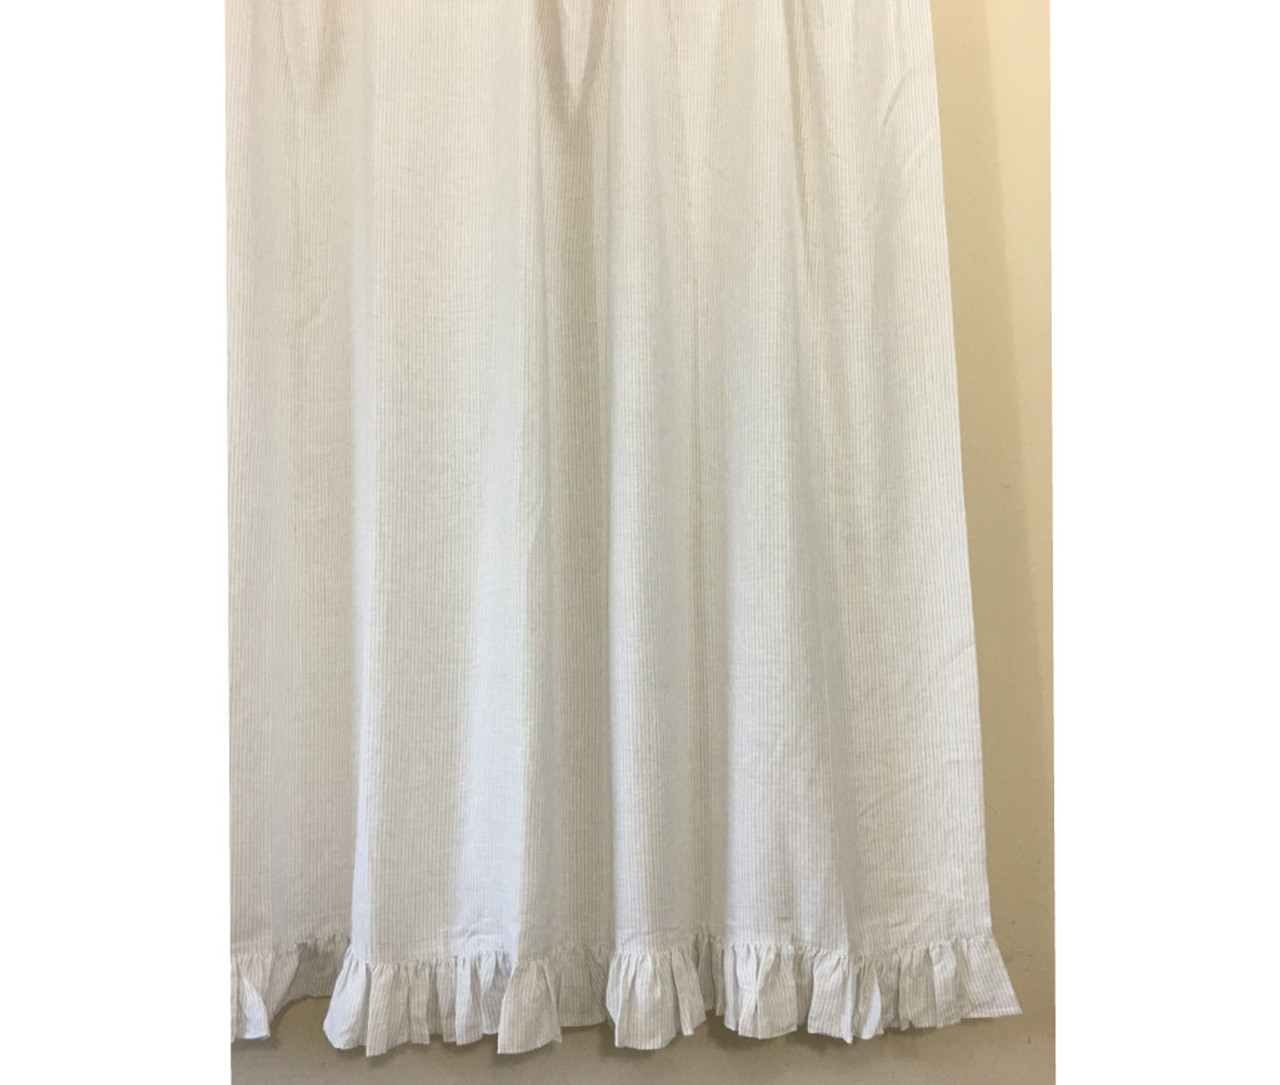 white linen shower curtain. Stone Grey and White Ticking Striped Linen Shower Curtain with Self Ruffles